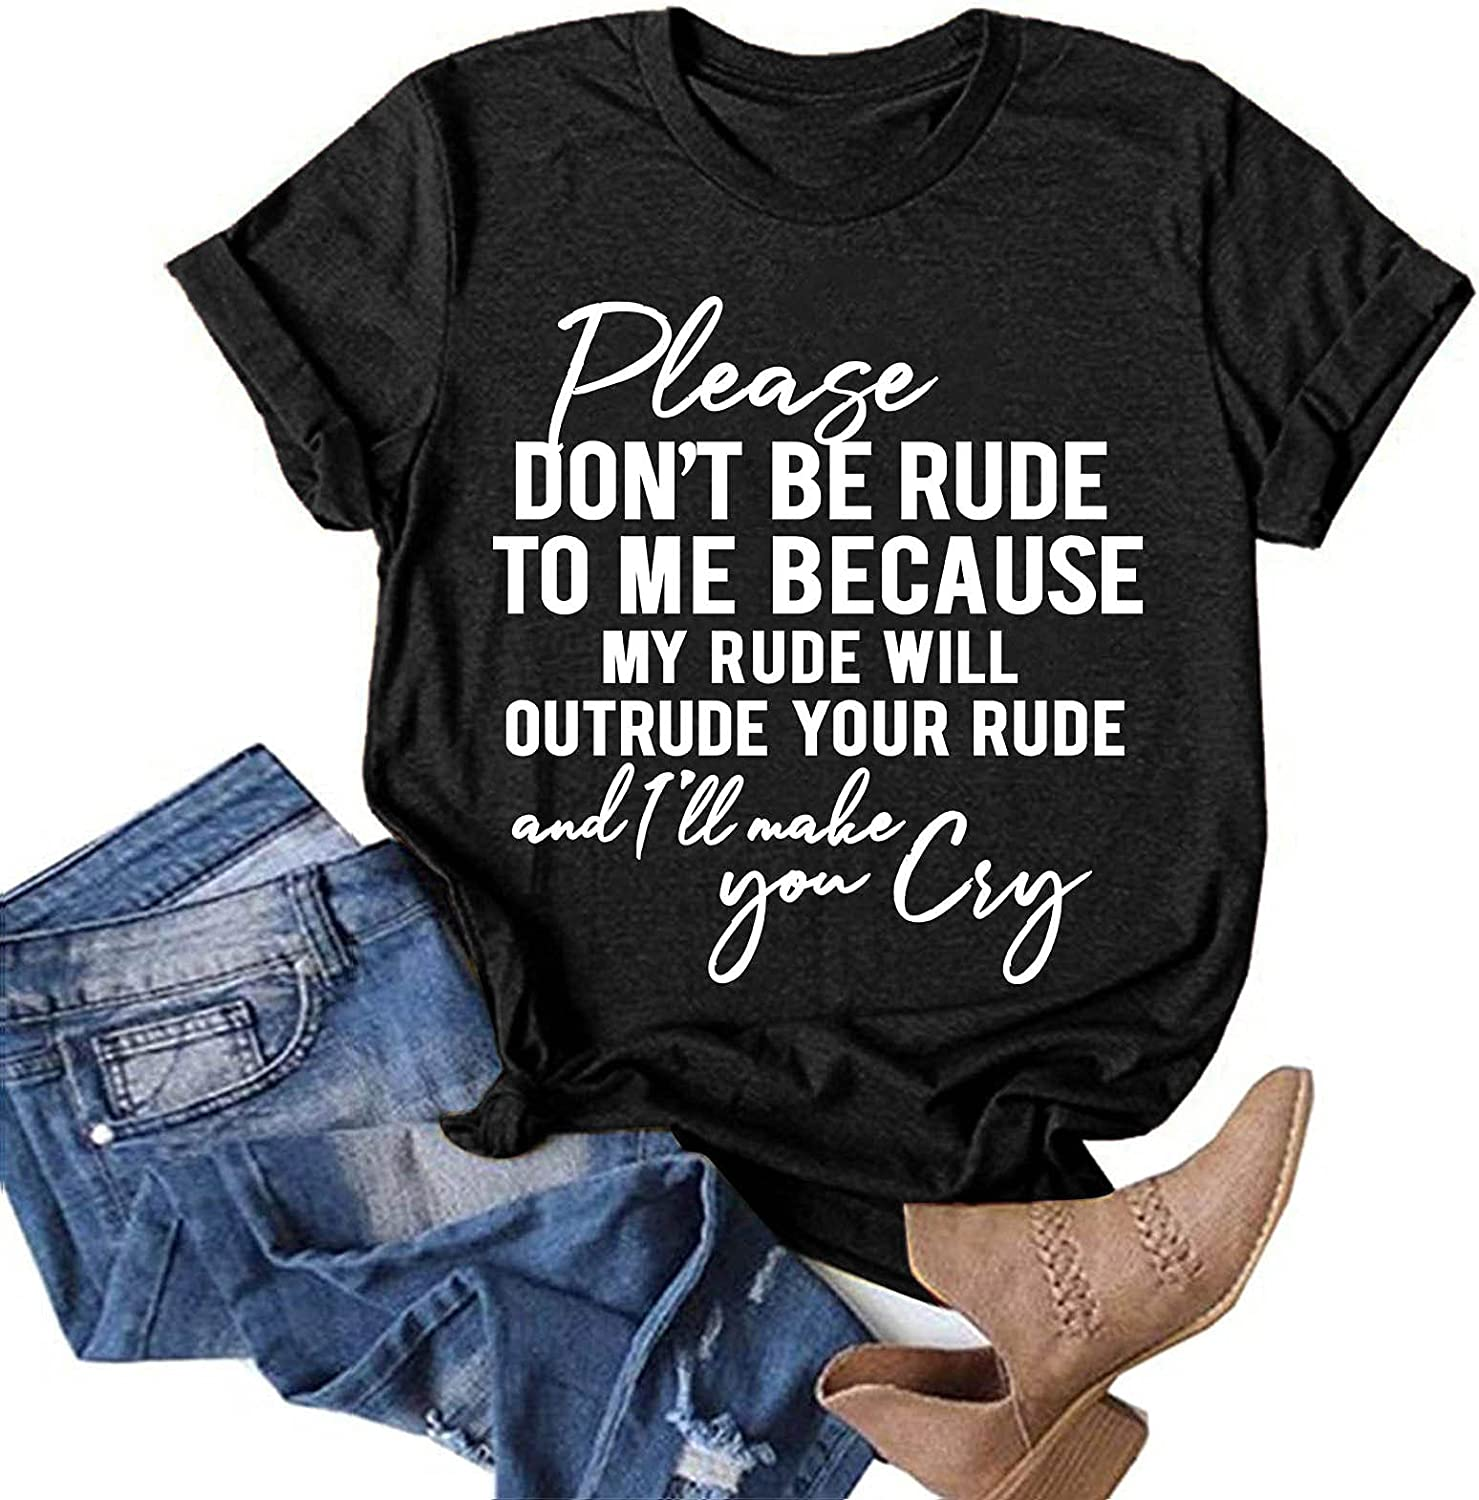 Jaqqra Summer Tops for Women, Womens Short Sleeve Tops Letter Print Crew Neck T-Shirts Flowy Casual Basic Tunic Tee Top